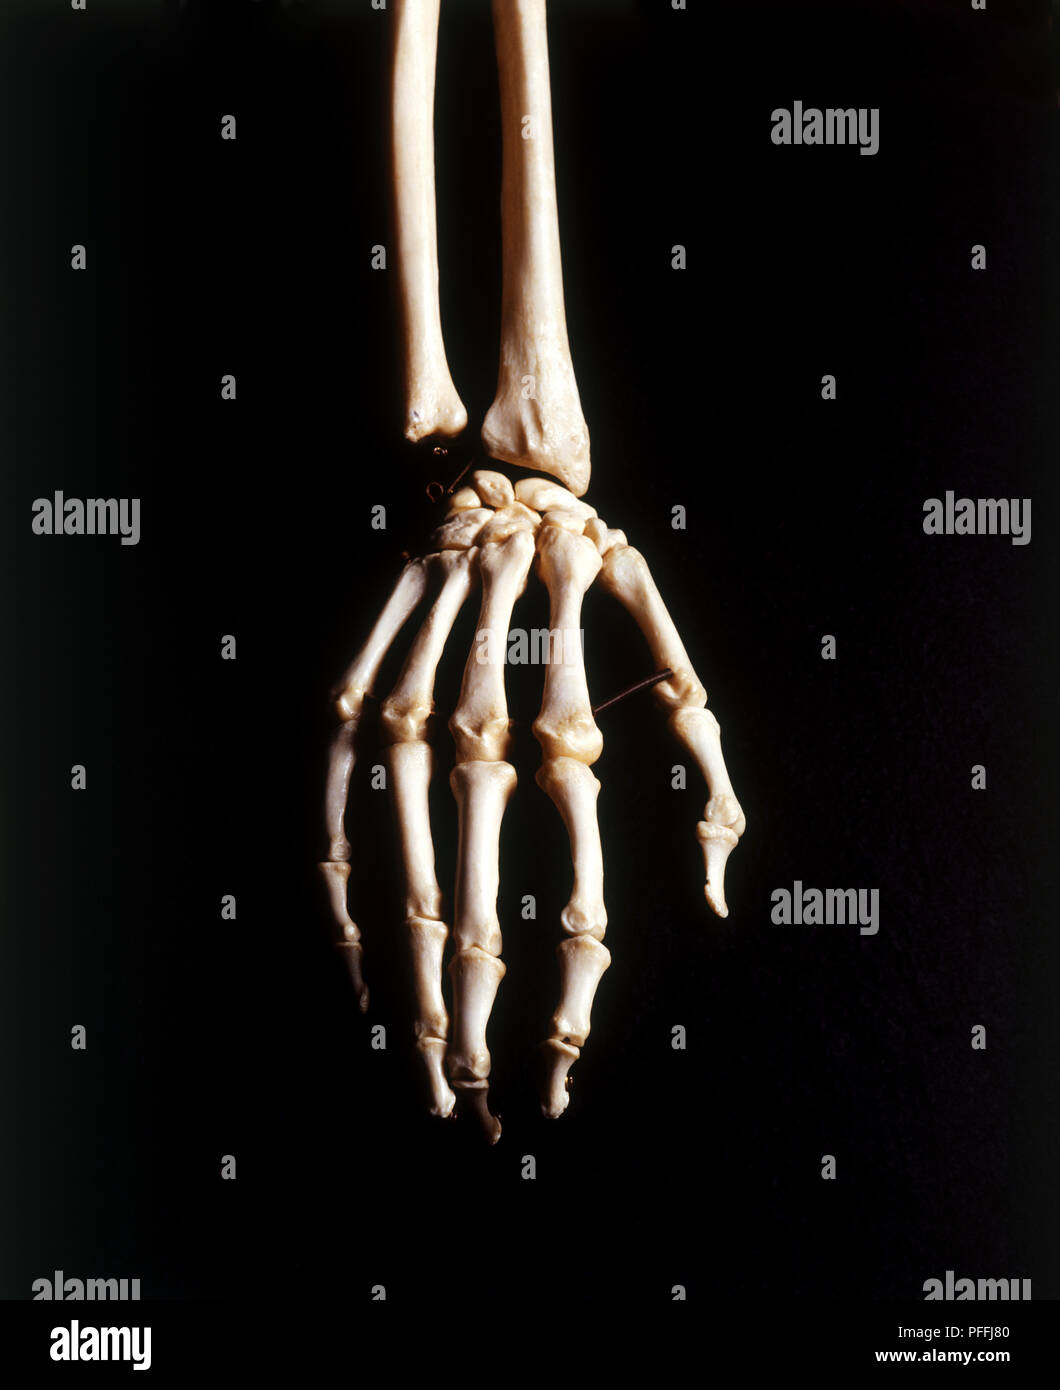 Hand Wrist Bones Studio Shot Stock Photos Hand Wrist Bones Studio